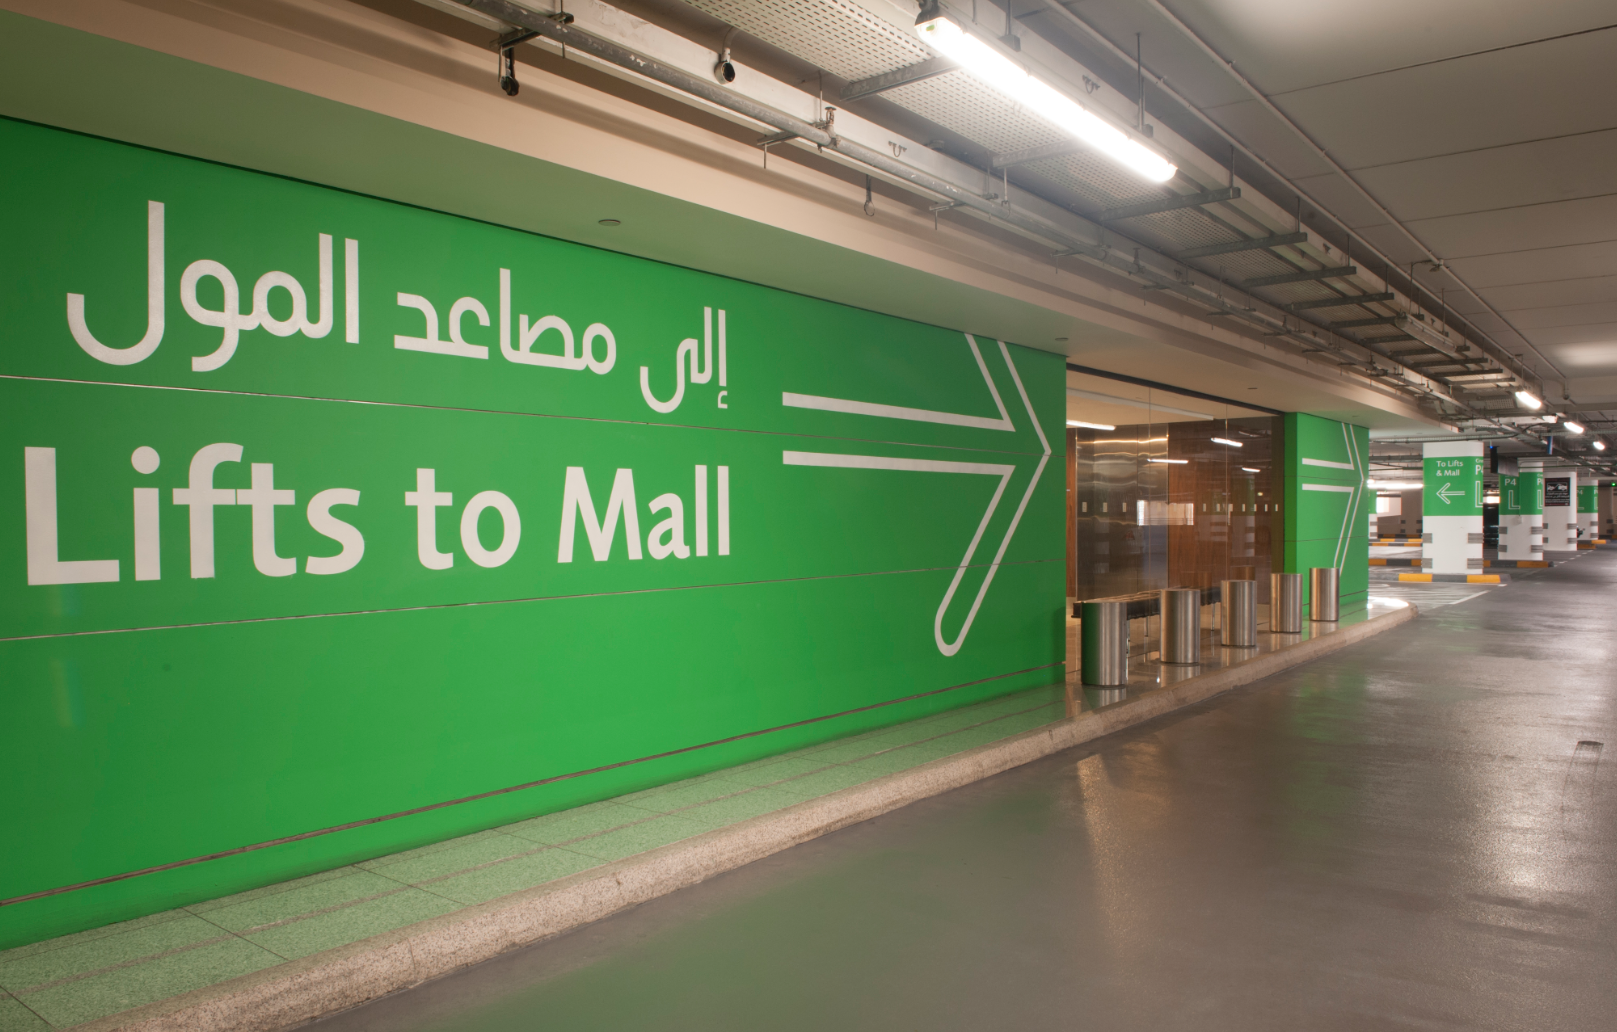 The Dubai Mall Car Parks Wayfinding And Signage Wall Painted